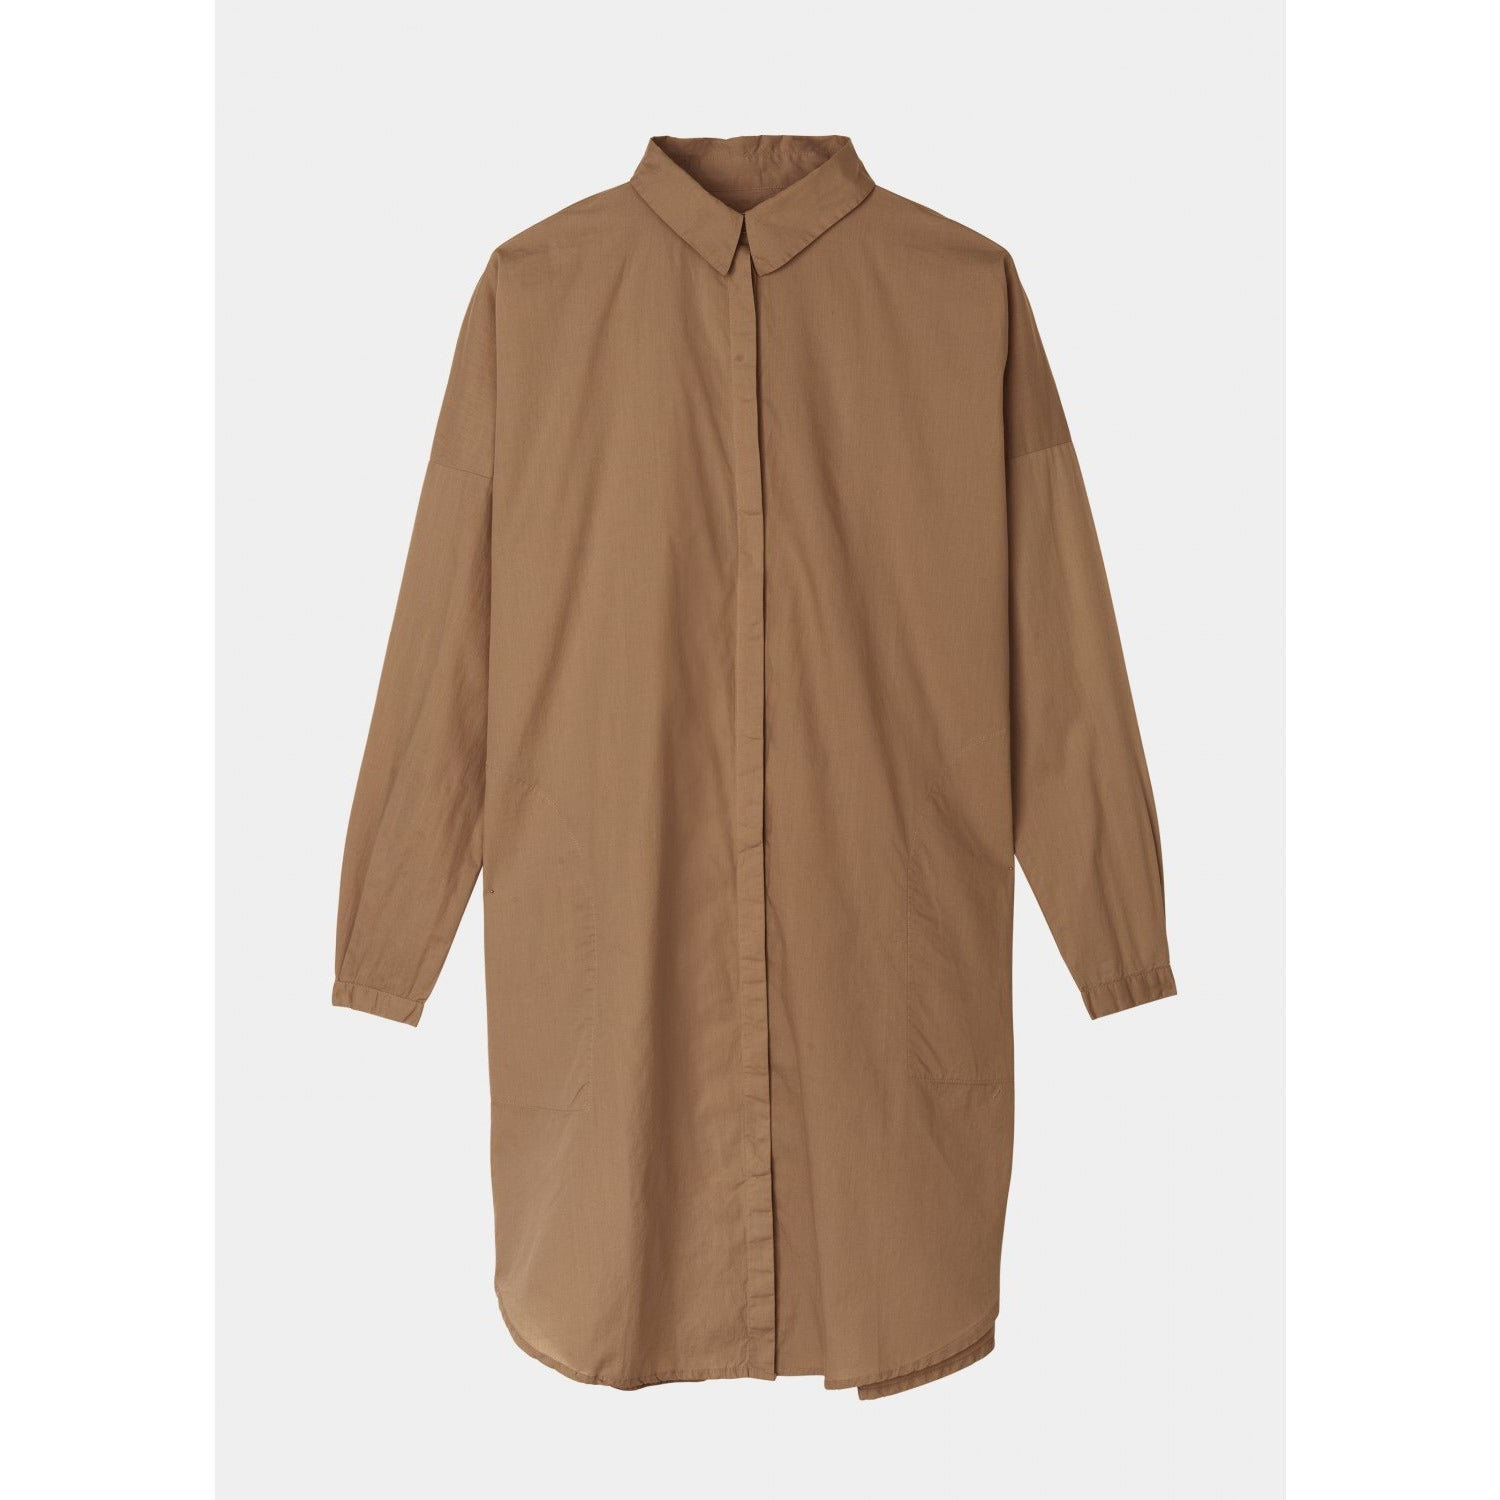 long sleeve button up shirt dress in tan by designer aiayu